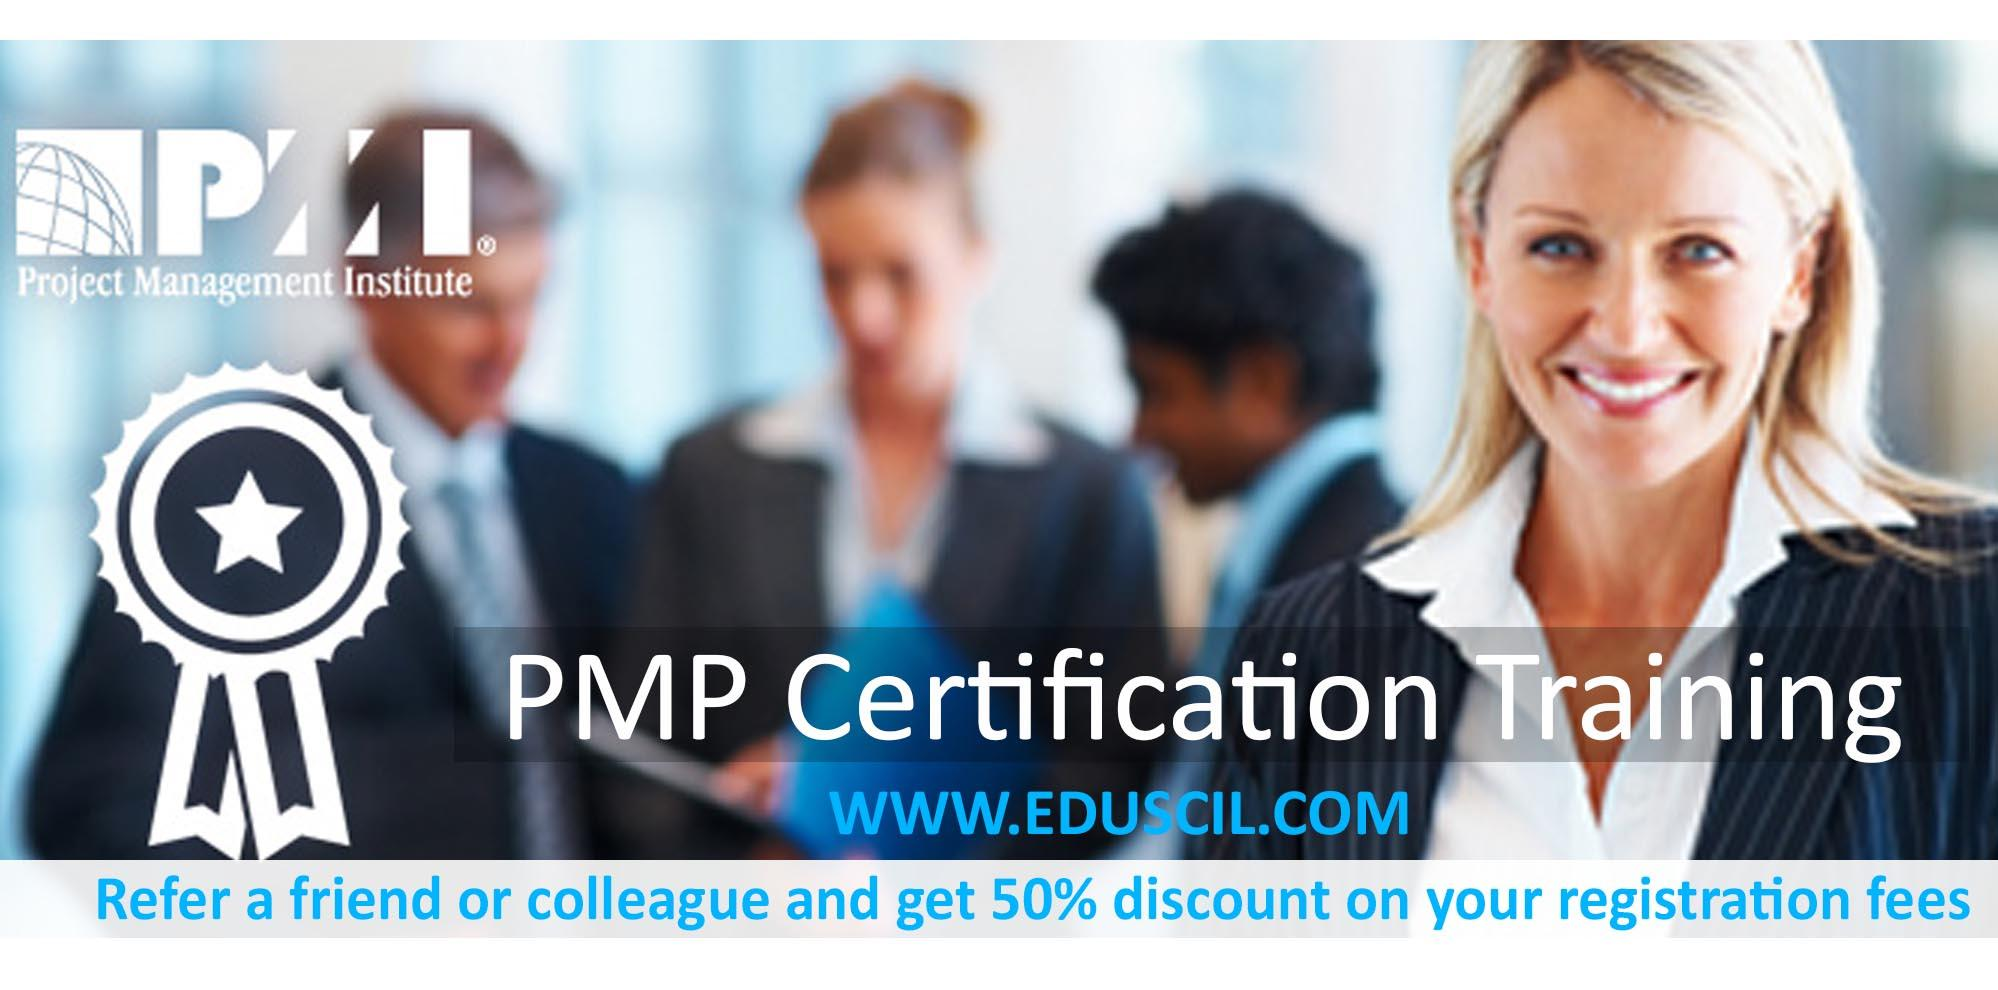 Pmp certification training course in san francisco ca usa pmp certification training course in san francisco ca usa eduscil 1betcityfo Image collections